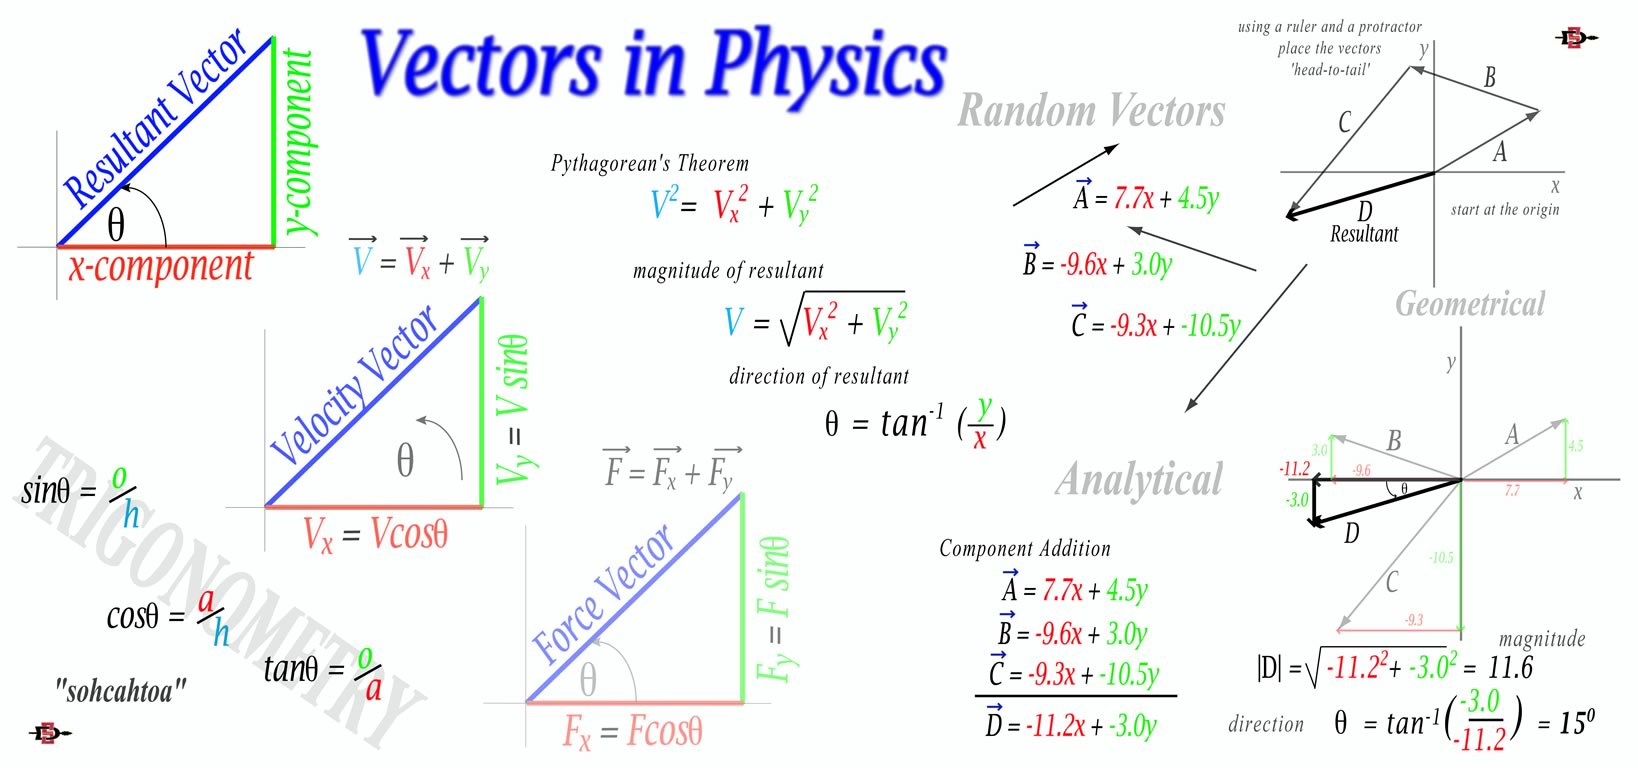 vectors physics problems and solutions pdf